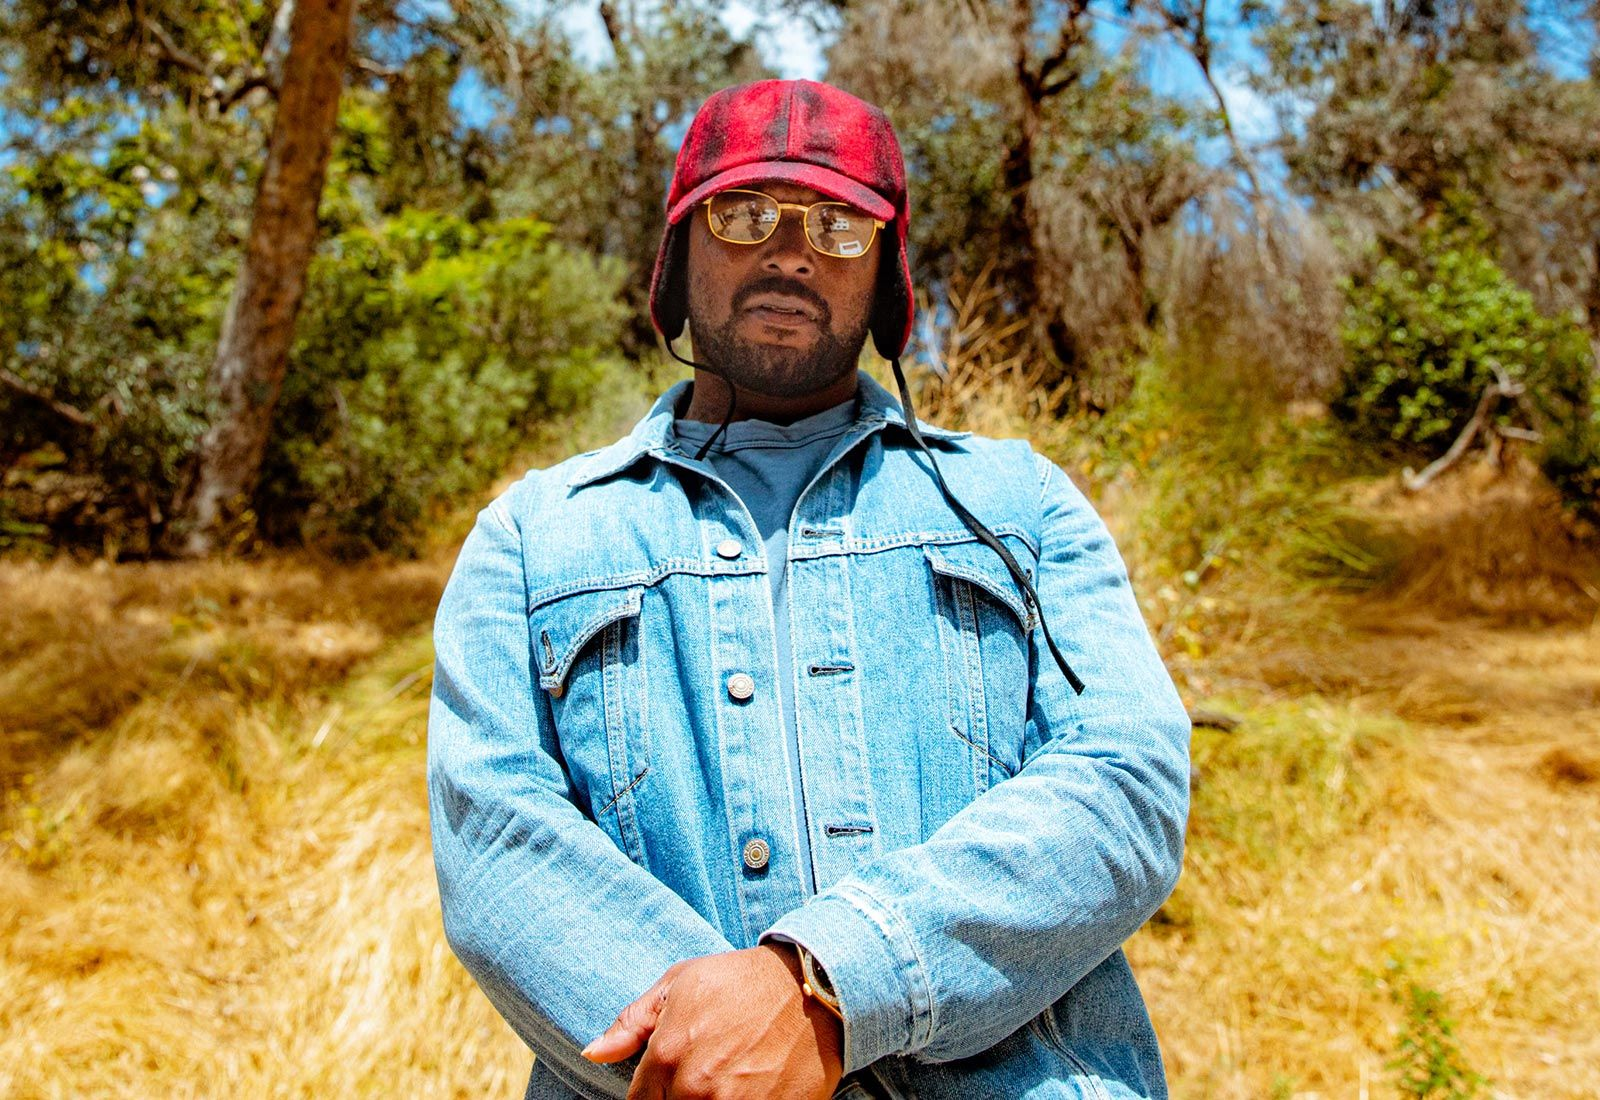 schoolboy q found bliss golf course Crash Talk